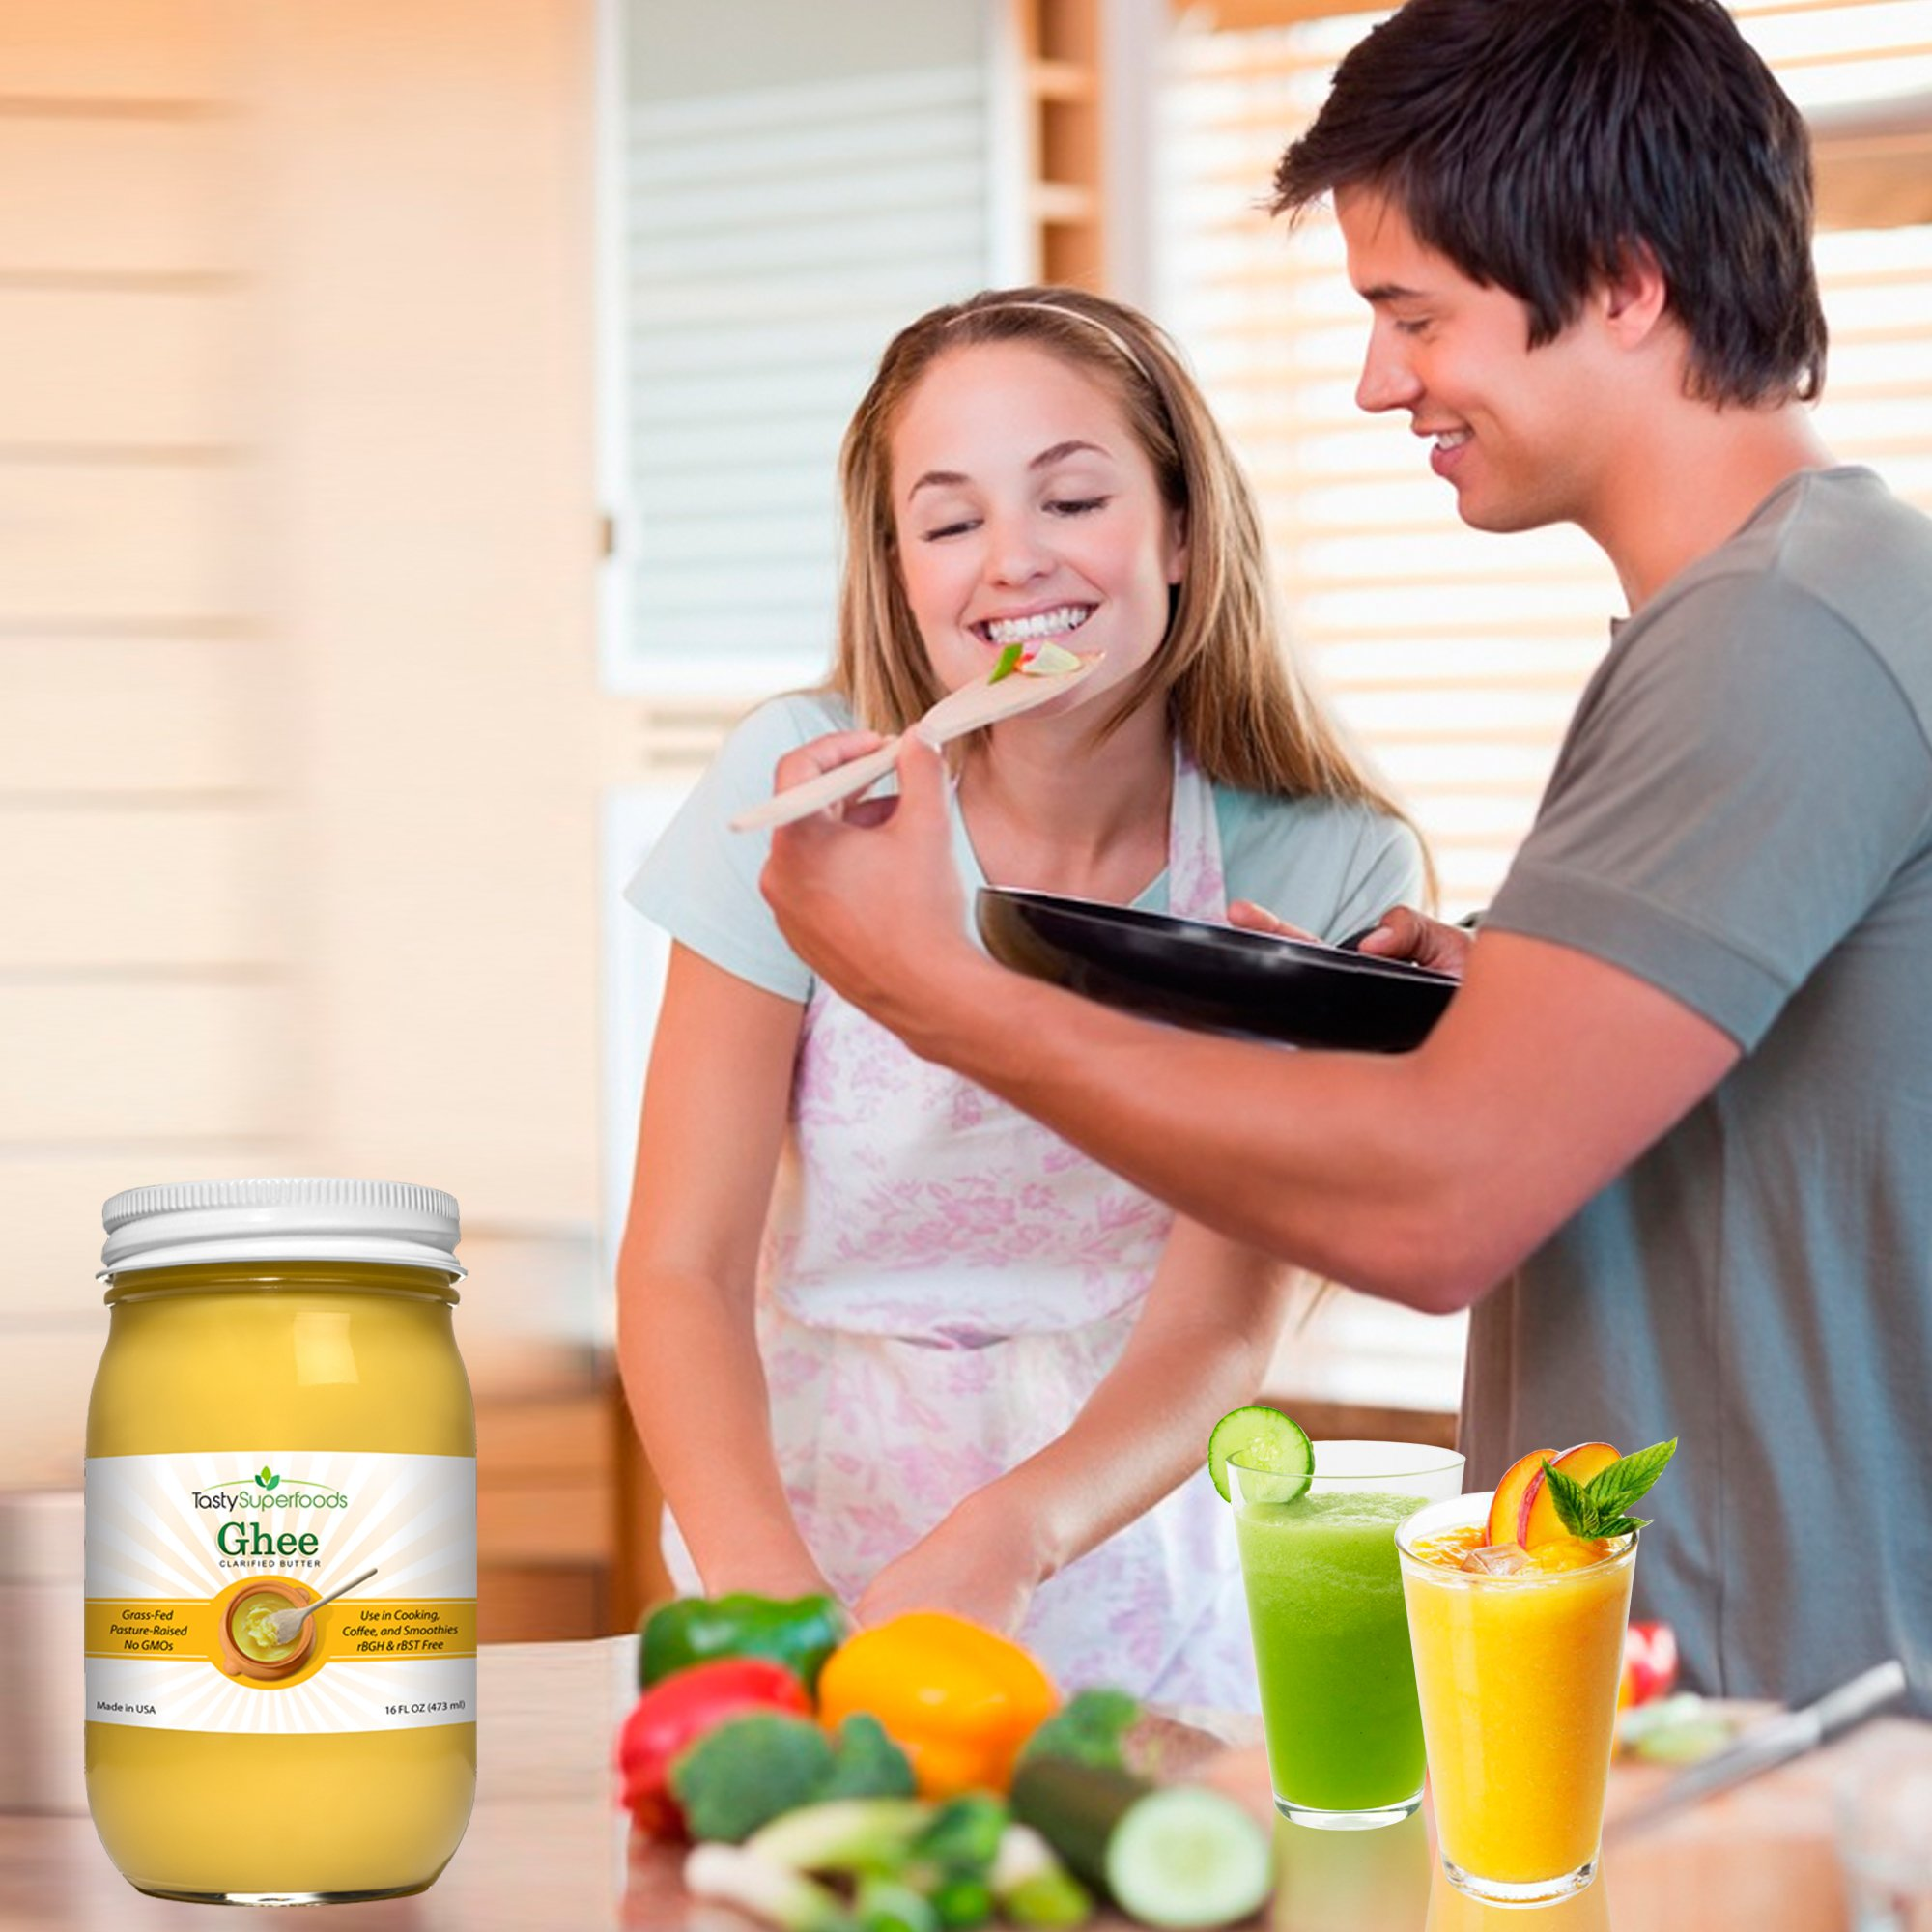 Tasty Superfoods Grass Fed Organic Ghee - Glass Jar of Pure, Unsalted Clarified Butter from Grass-Fed Cows - Best Healthy Oil for Indian Cooking, in Coffee, or for diets like Paleo and Whole30 (16oz) by Tasty Superfoods (Image #6)